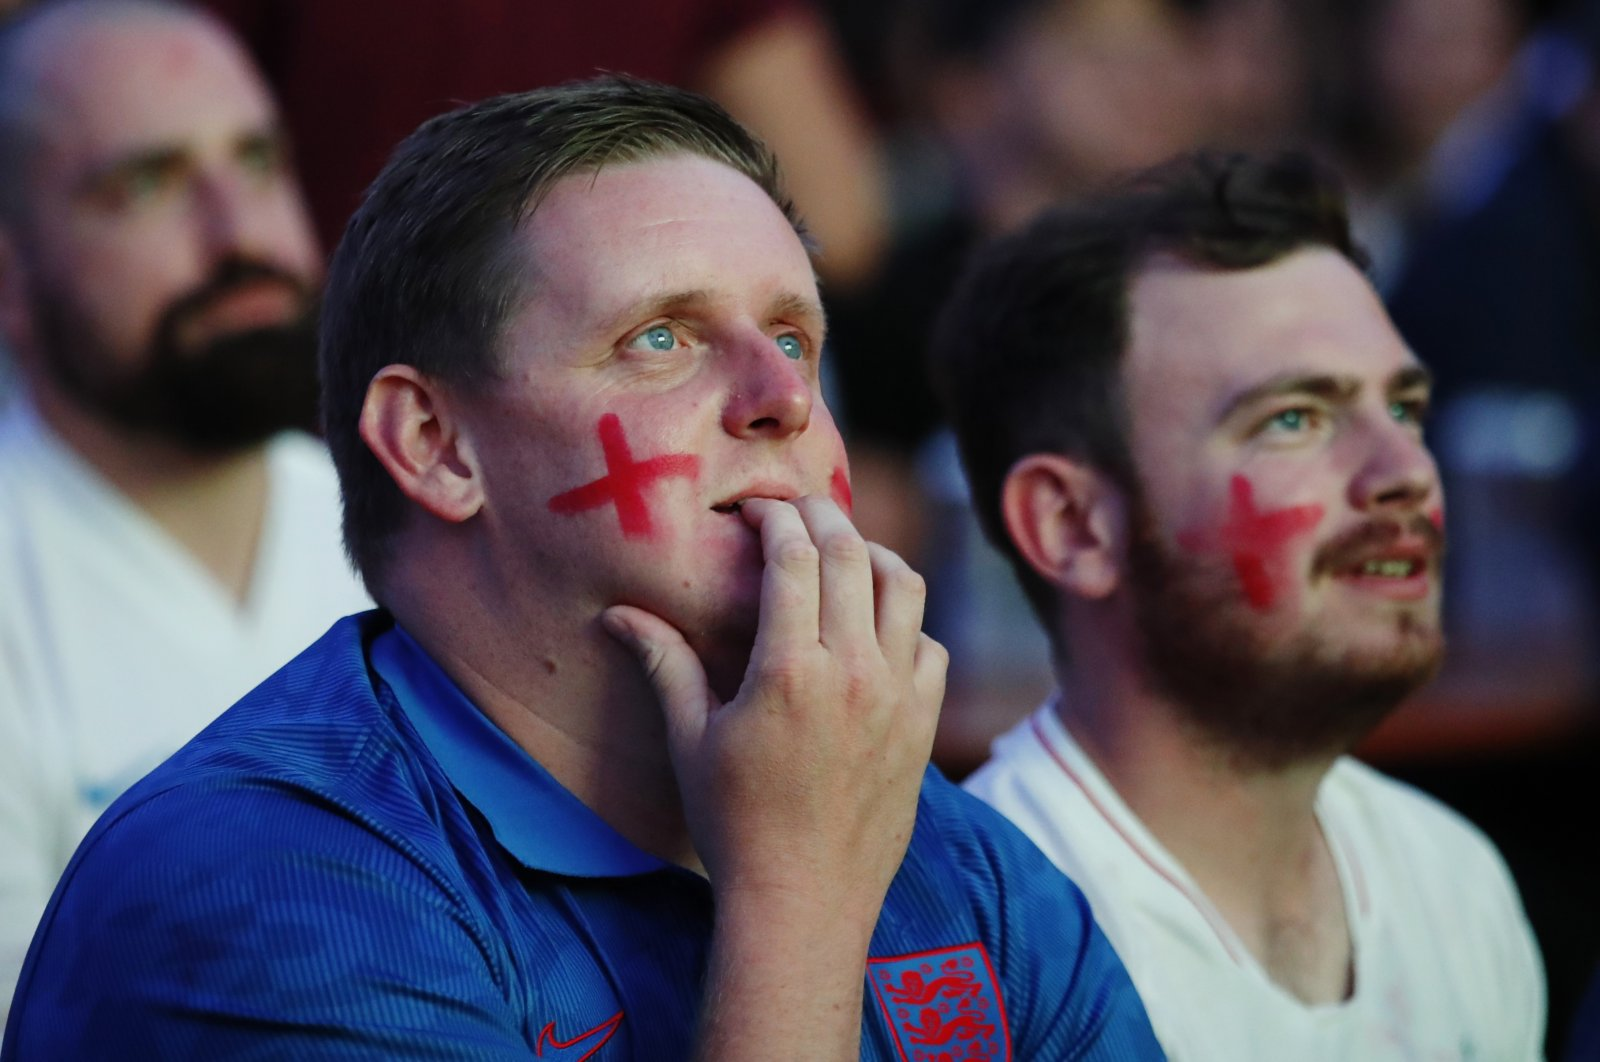 England fans react during the Euro 2020 semifinal match against Denmark, Vinegar Yard, London, England, July 7, 2021 (Reuters Photo)